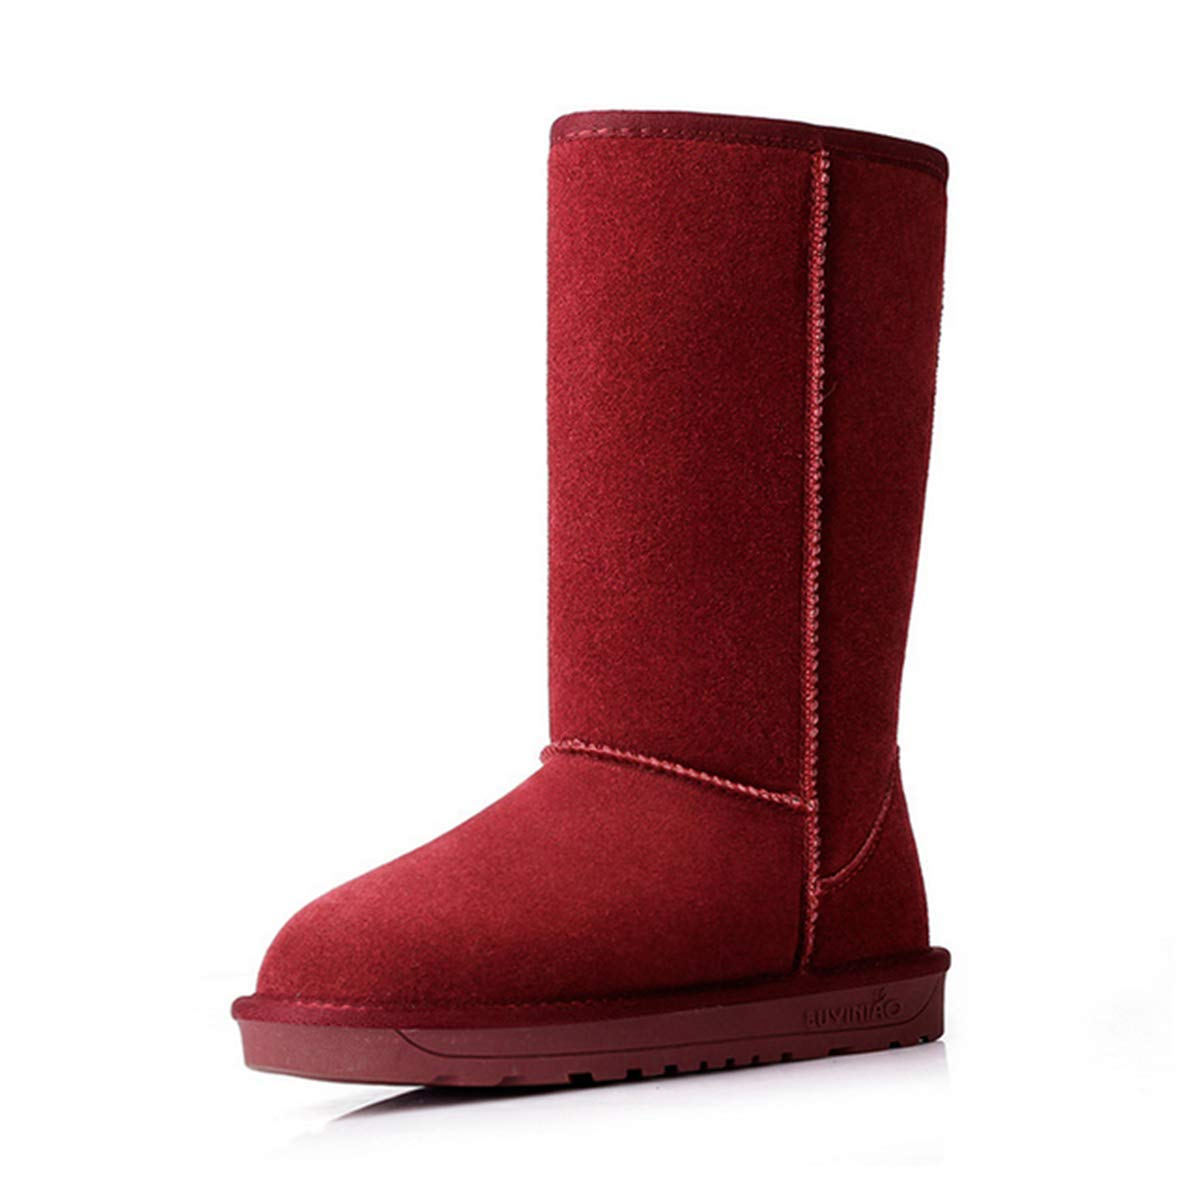 Chaussure de Suedé Neige Hiver Chaude pour Rouge Femme 15877 Homme Unisexe Talon Plat Bottes de Neige Fourrée à Enfiler Suedé Classique Bottines Cuissardes Antidérapante-Fanessy Rouge Vineux 797817e - fast-weightloss-diet.space